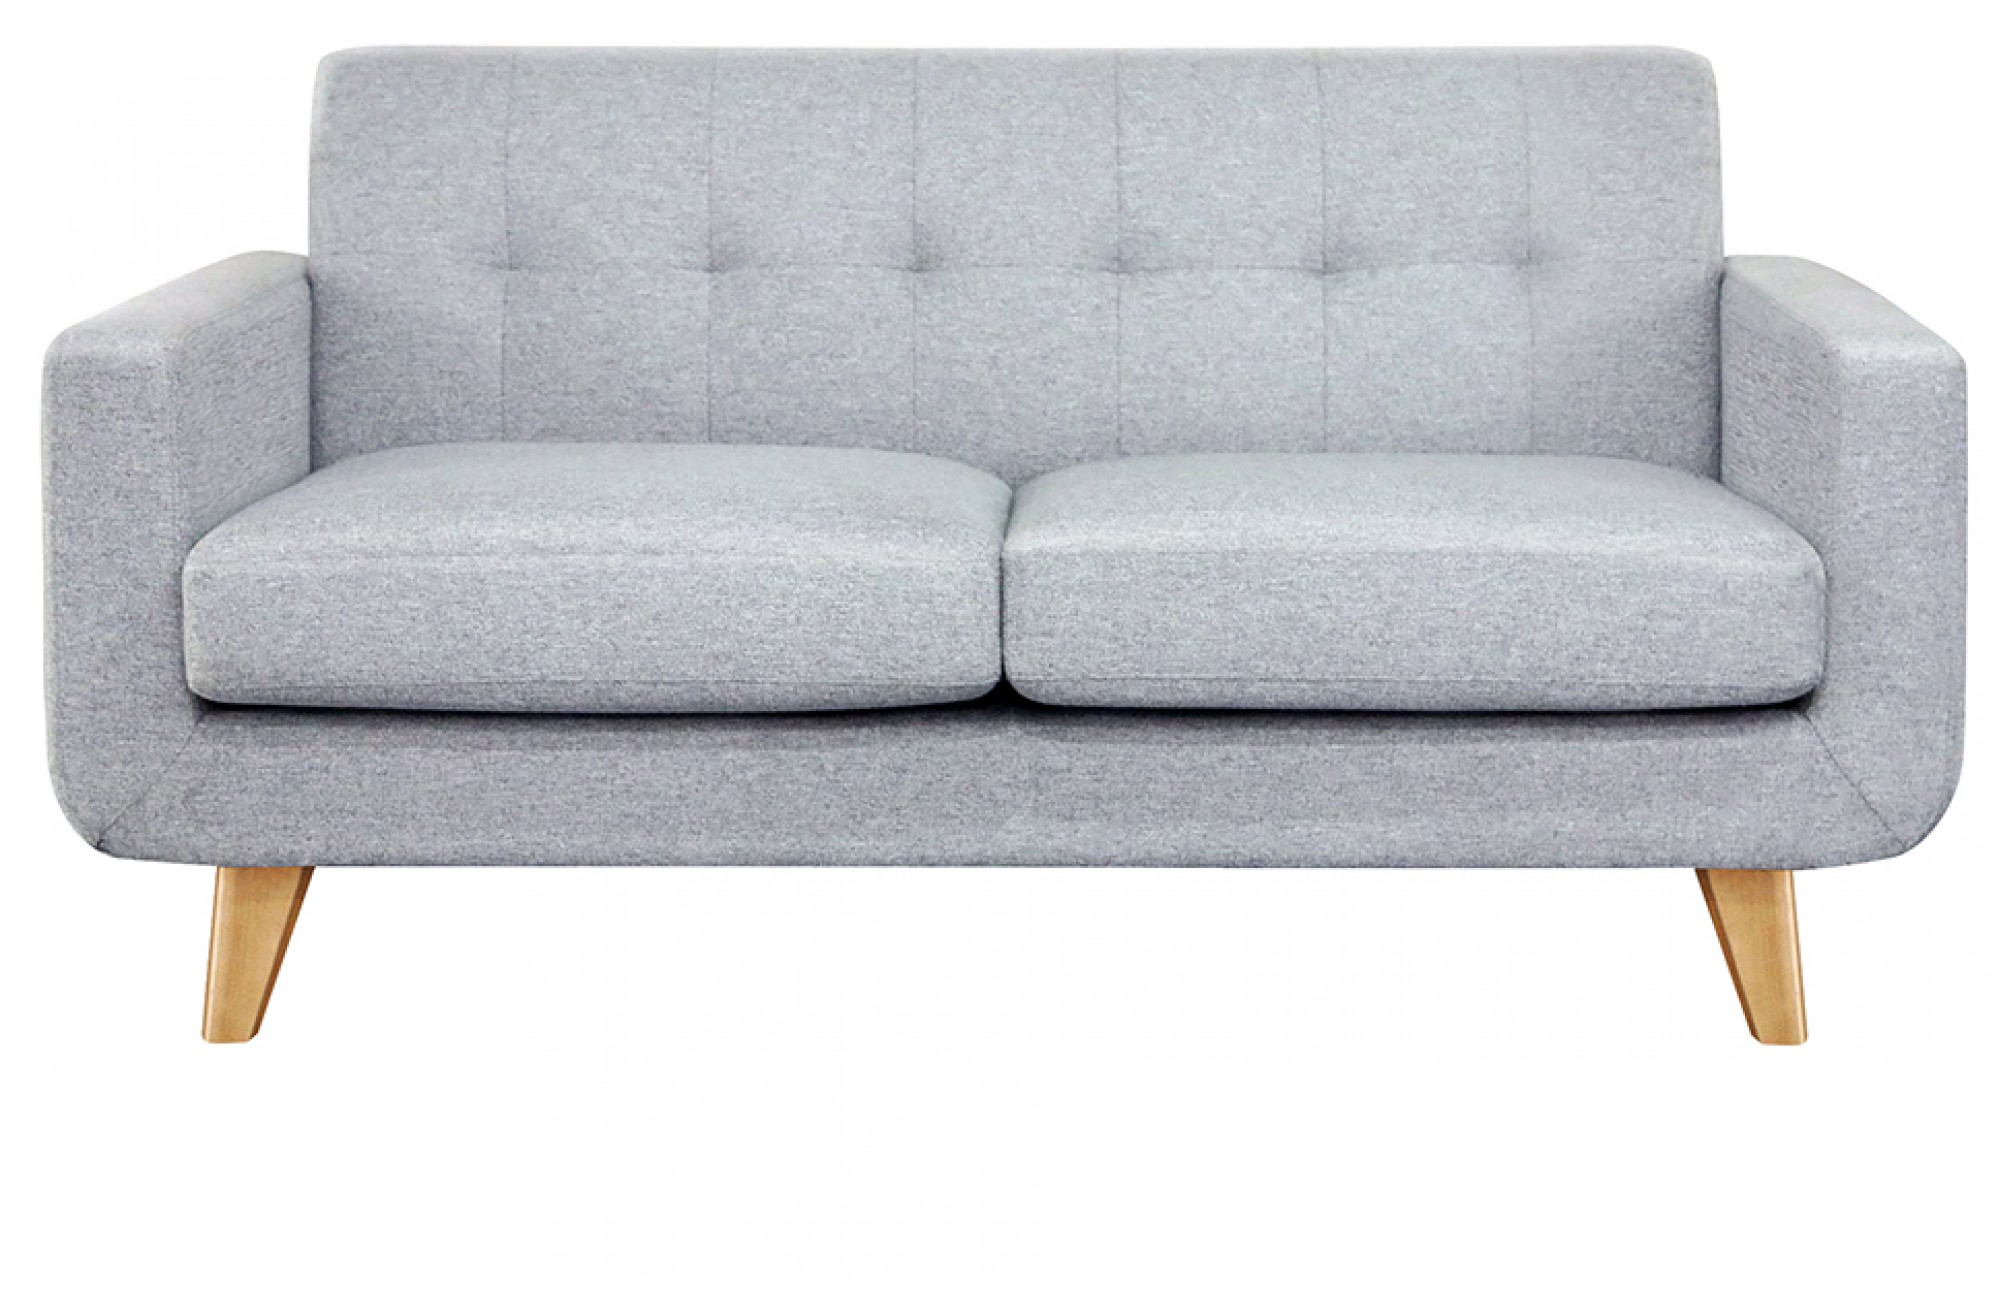 two seater sofa grey 2 seater sofa - oak legs -lounge furniture - out u0026 out EEQLBOC